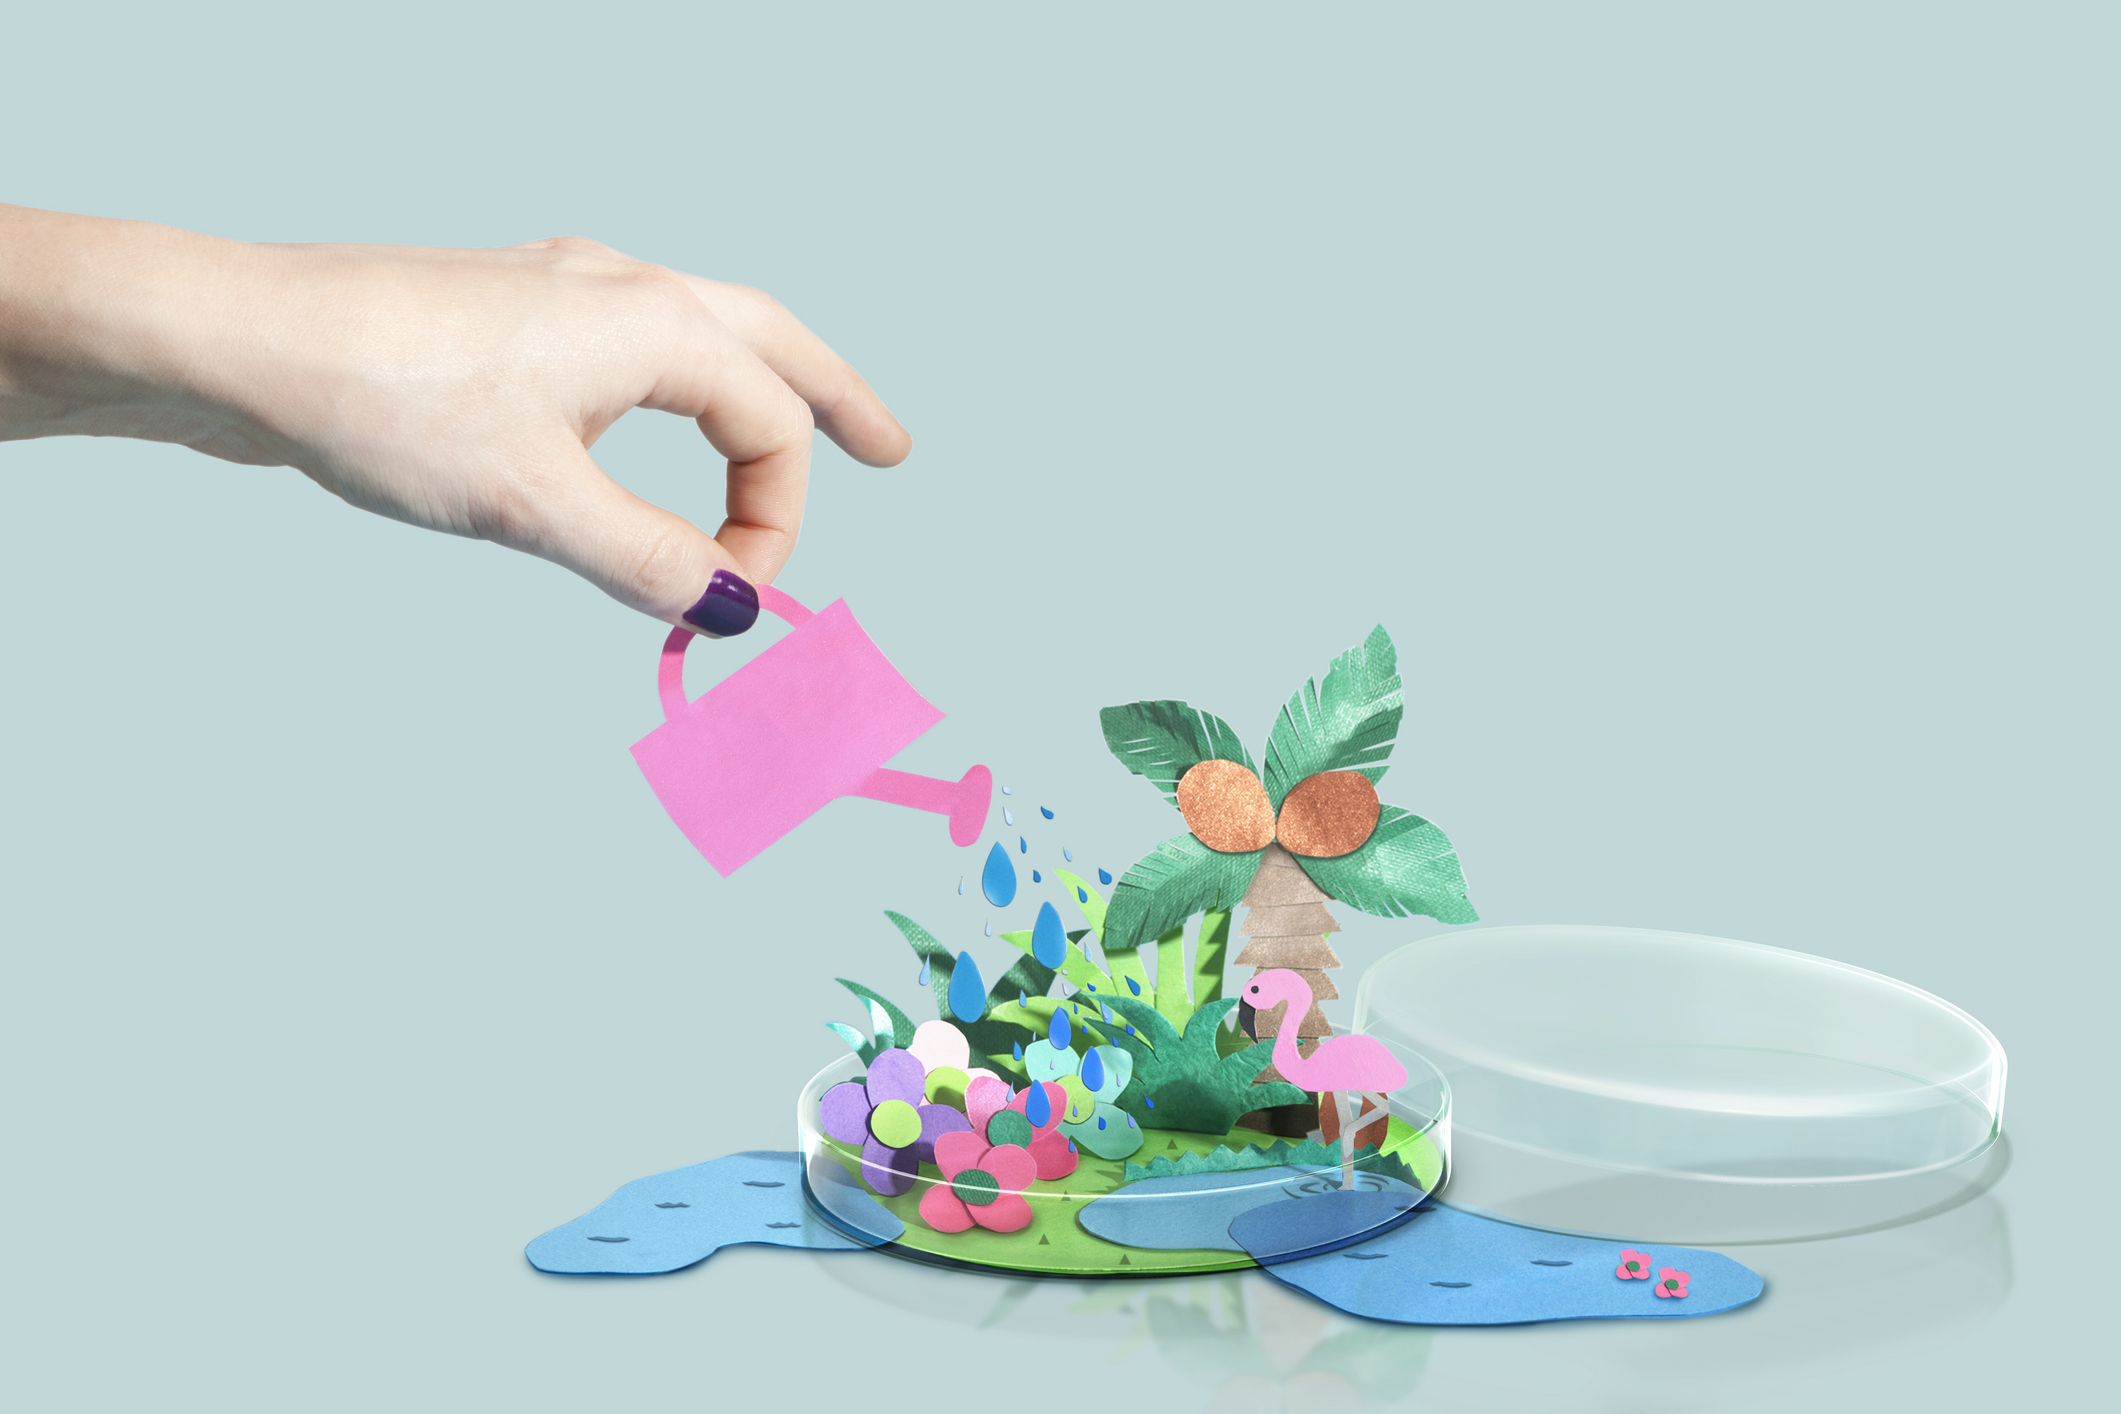 Paper Boat Creative/Getty Images